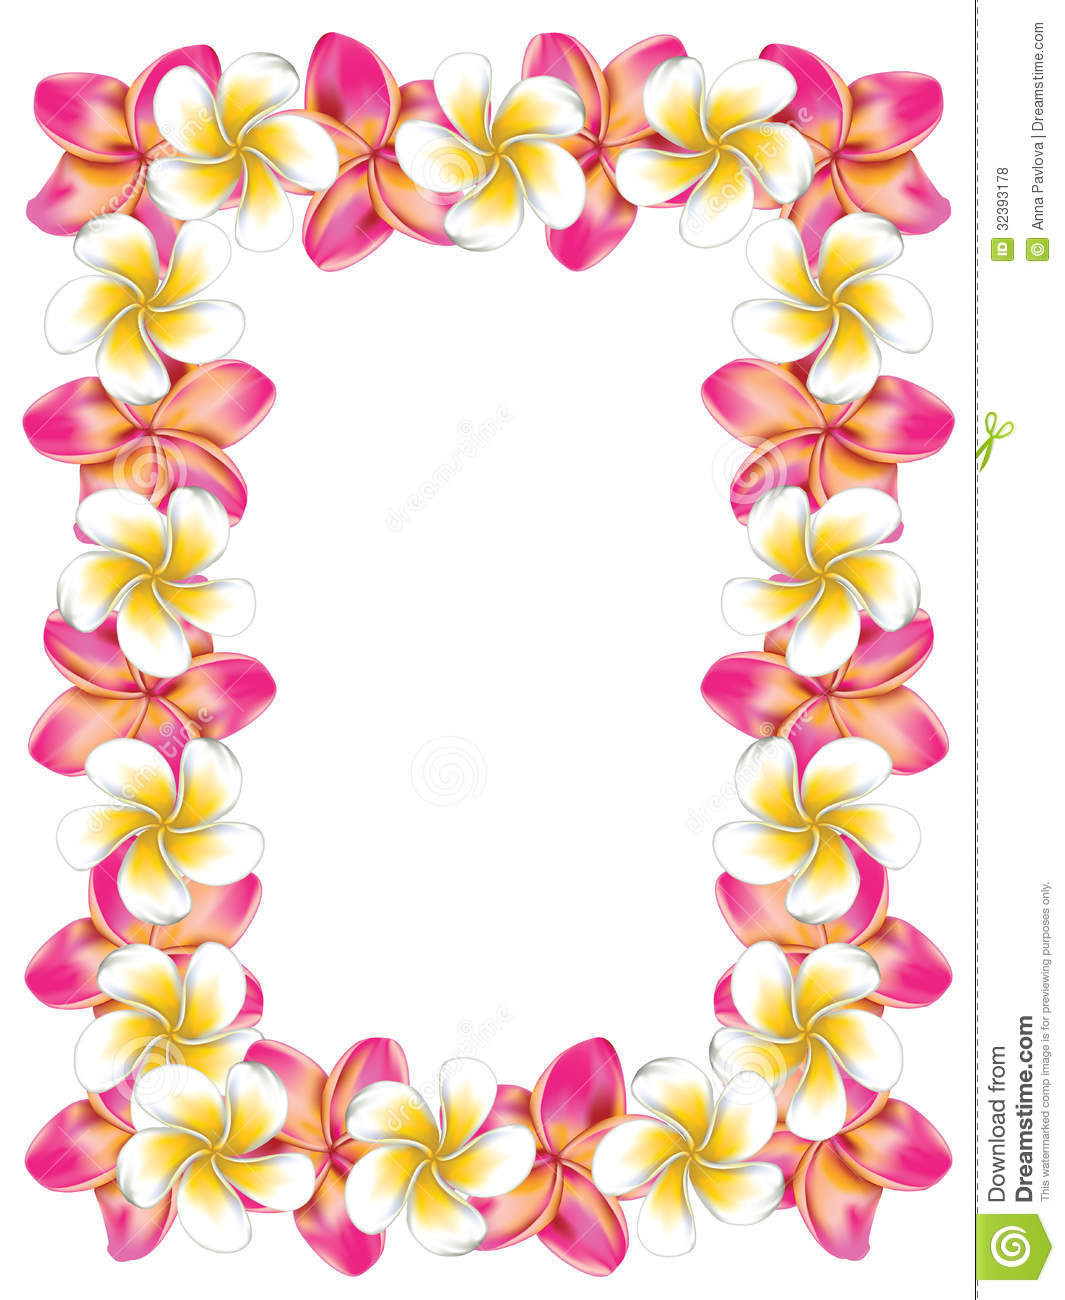 Hawaiian flower clipart at getdrawings free for personal use 1065x1300 hawaiian clip art borders tropical border lovely luau flower izmirmasajfo